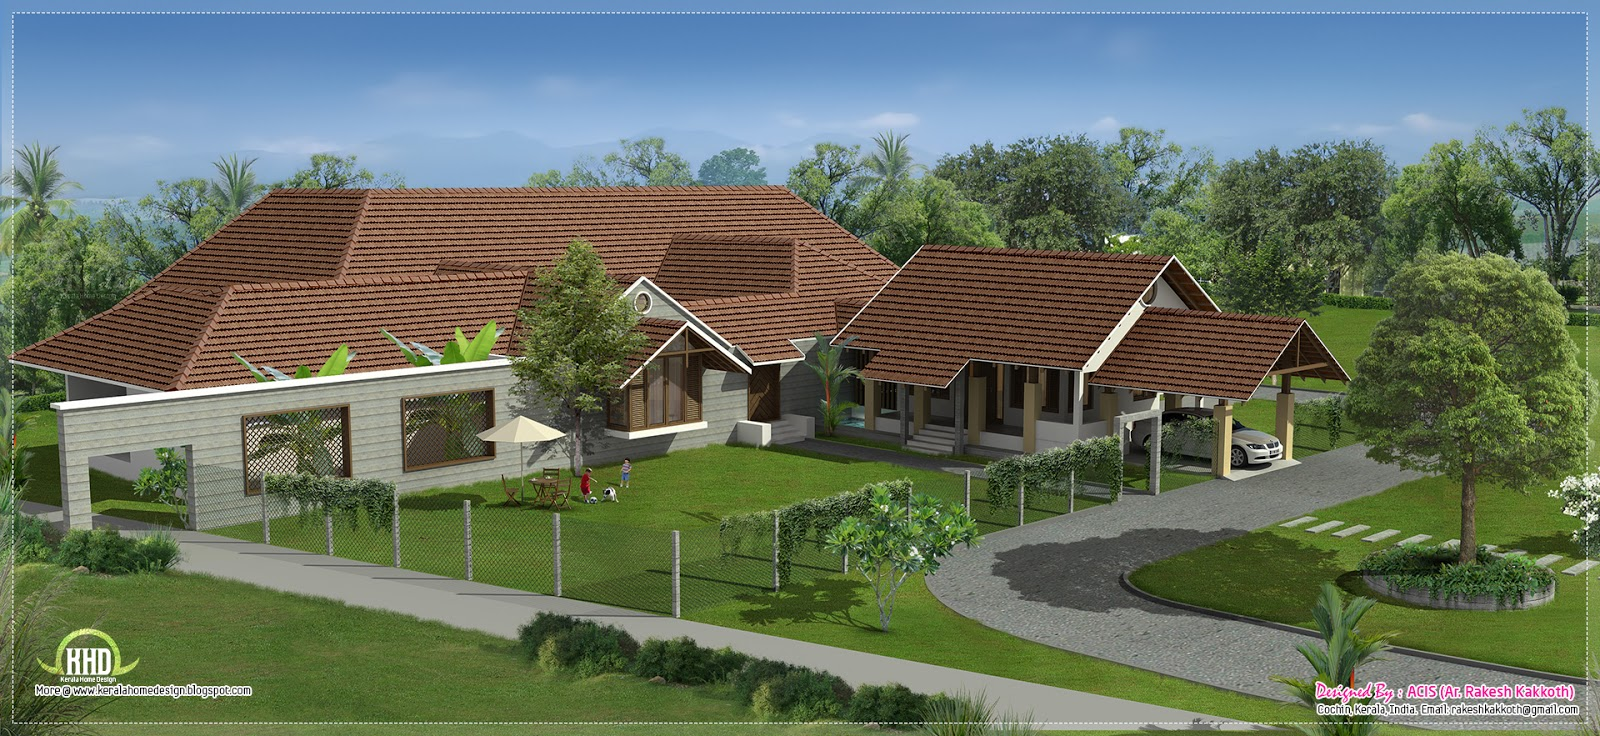 Luxury Bungalow Exterior Design Kerala Home Design